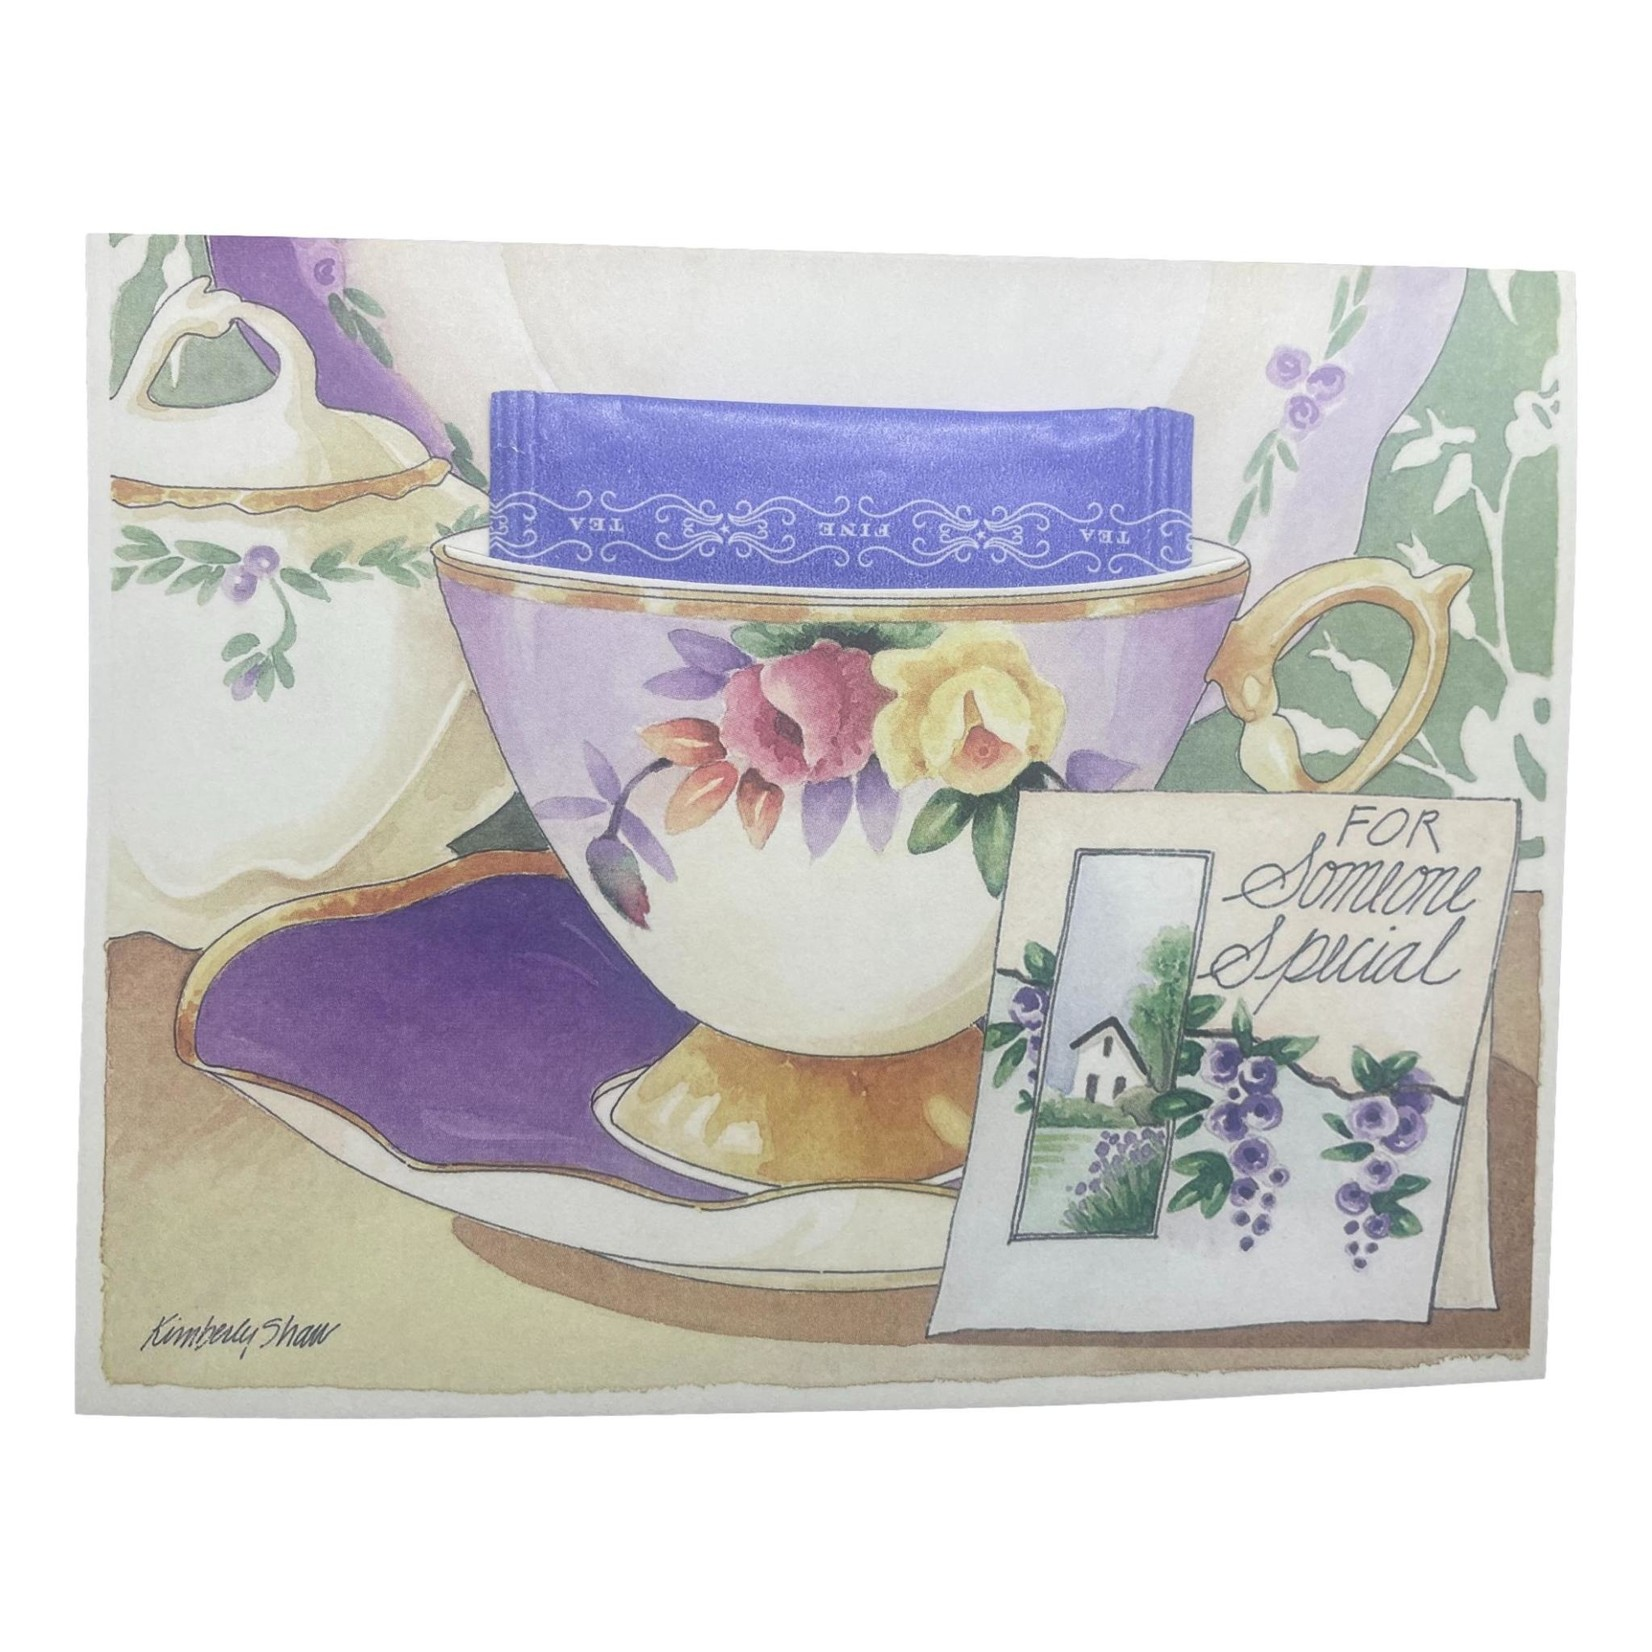 Kimberly Shaw For Someone Special Teacup Card